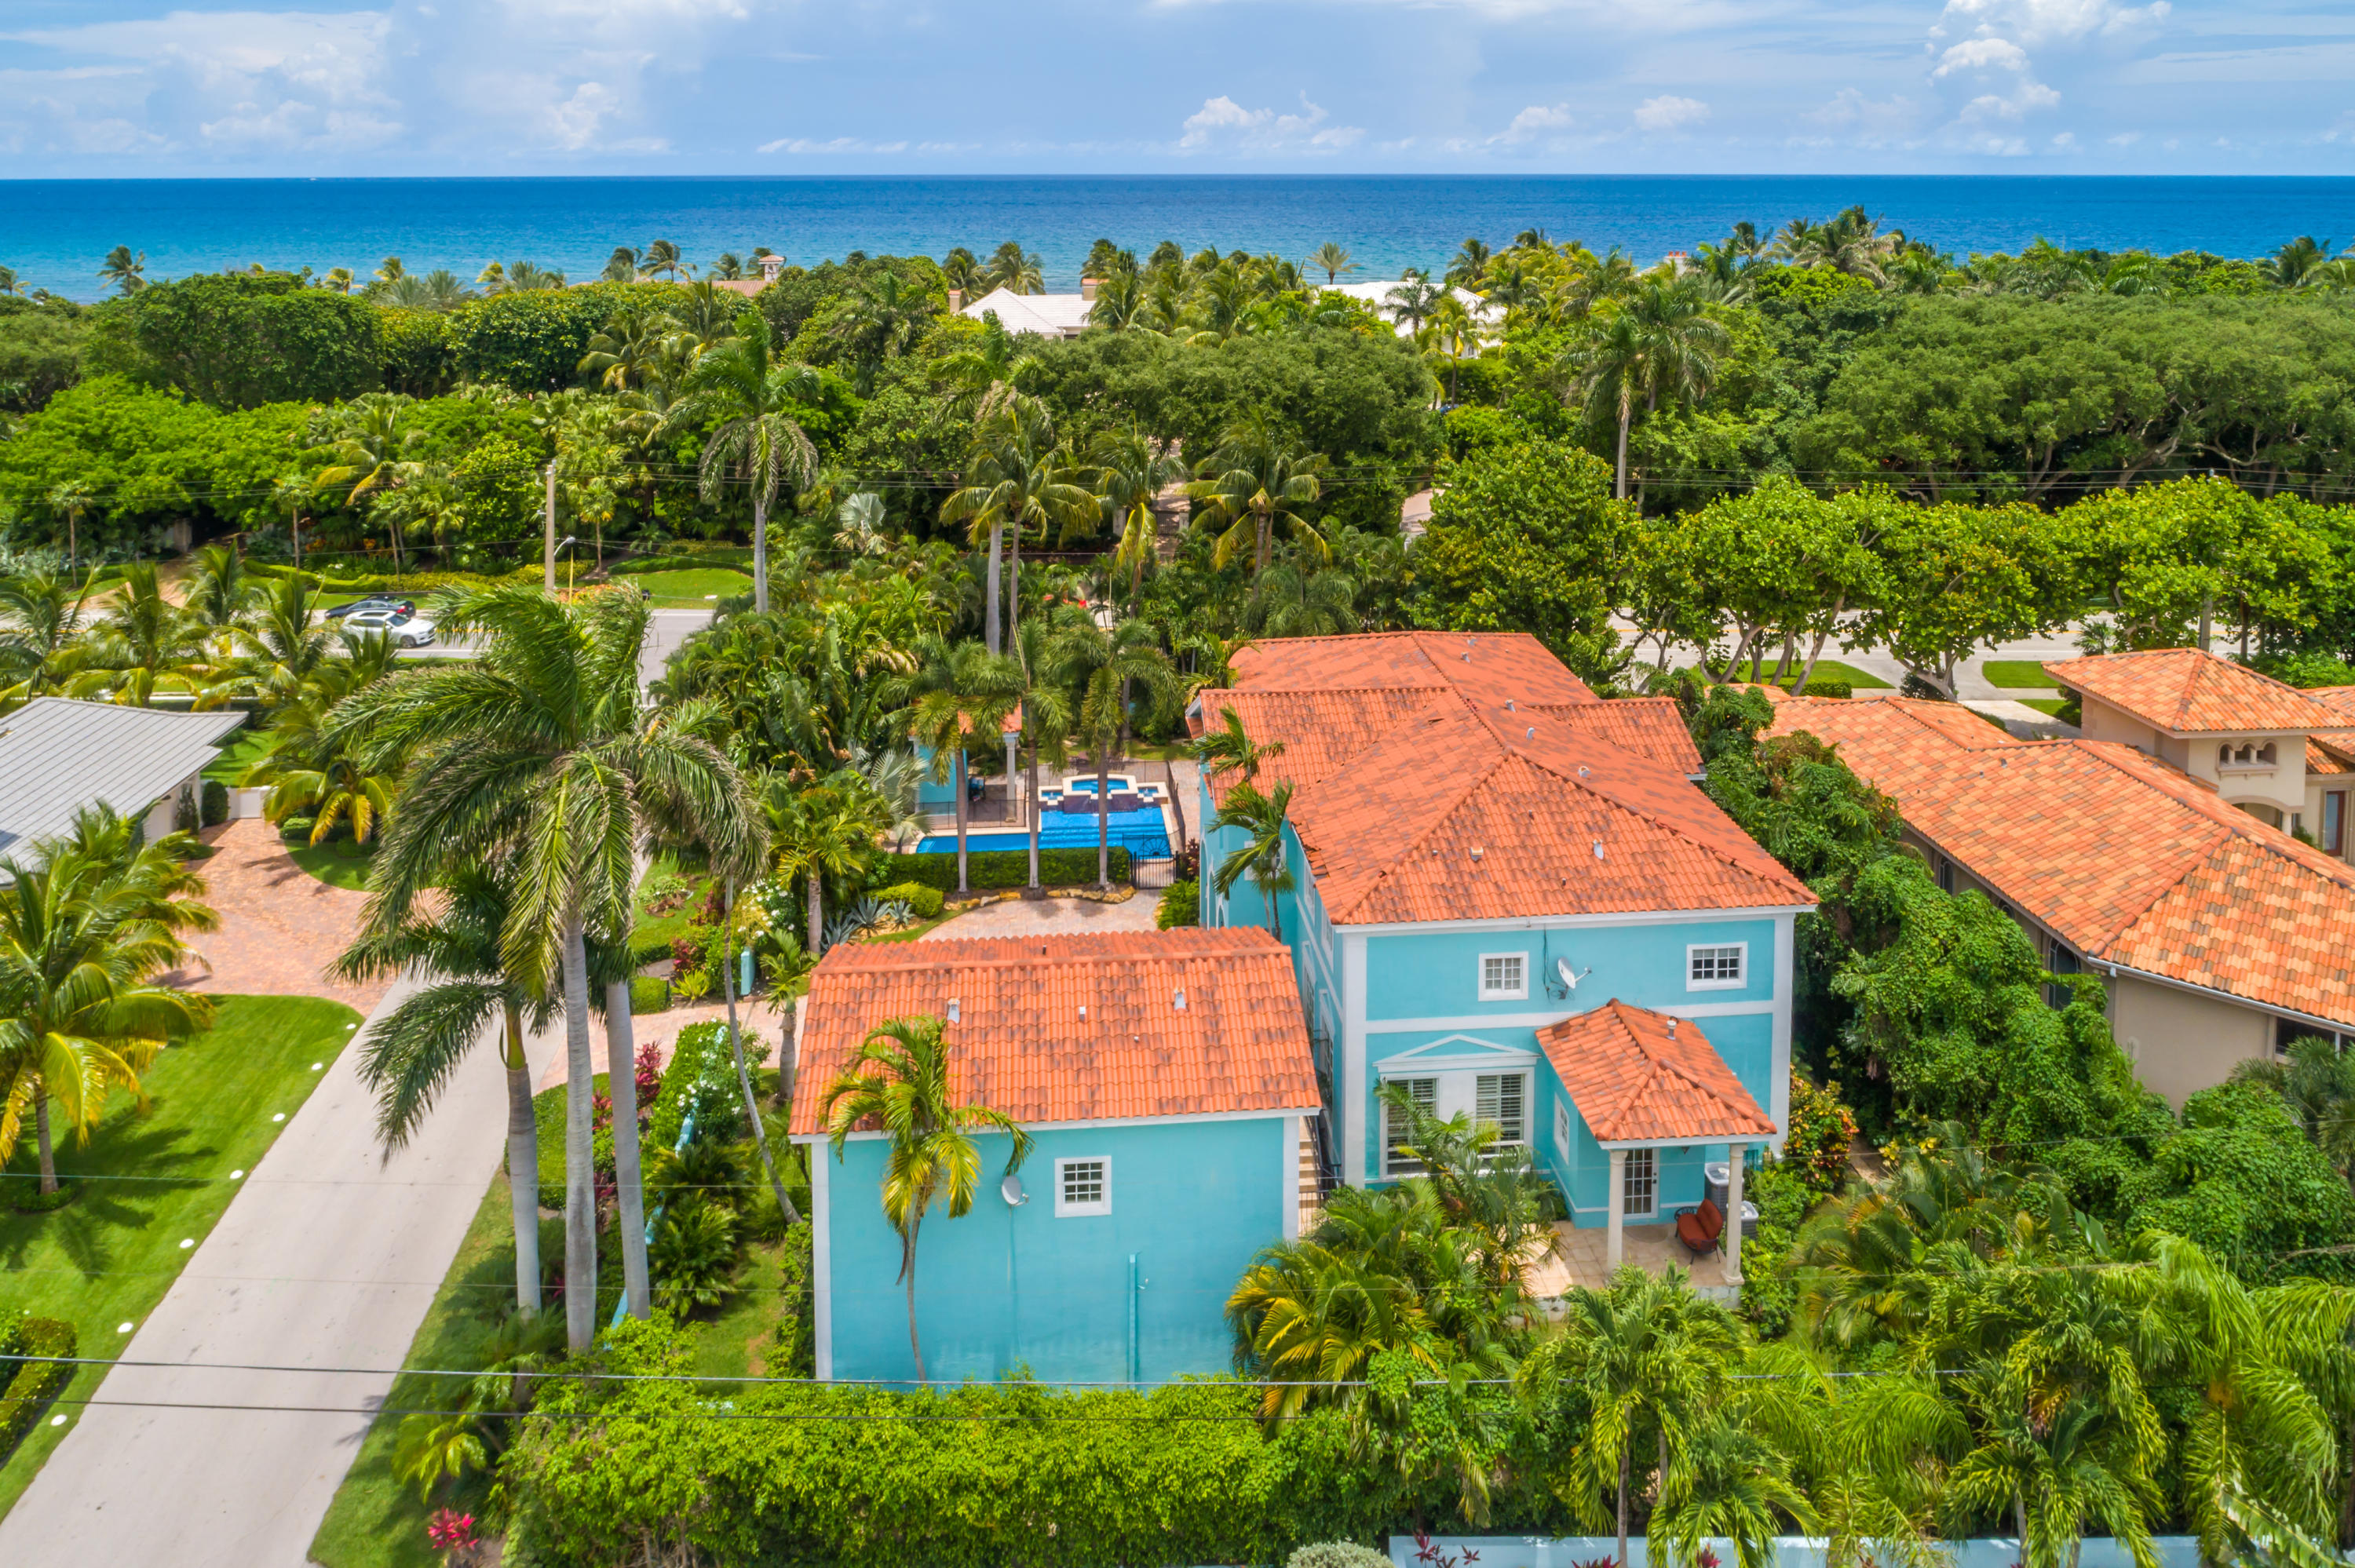 SEAGATE DELRAY BEACH REAL ESTATE